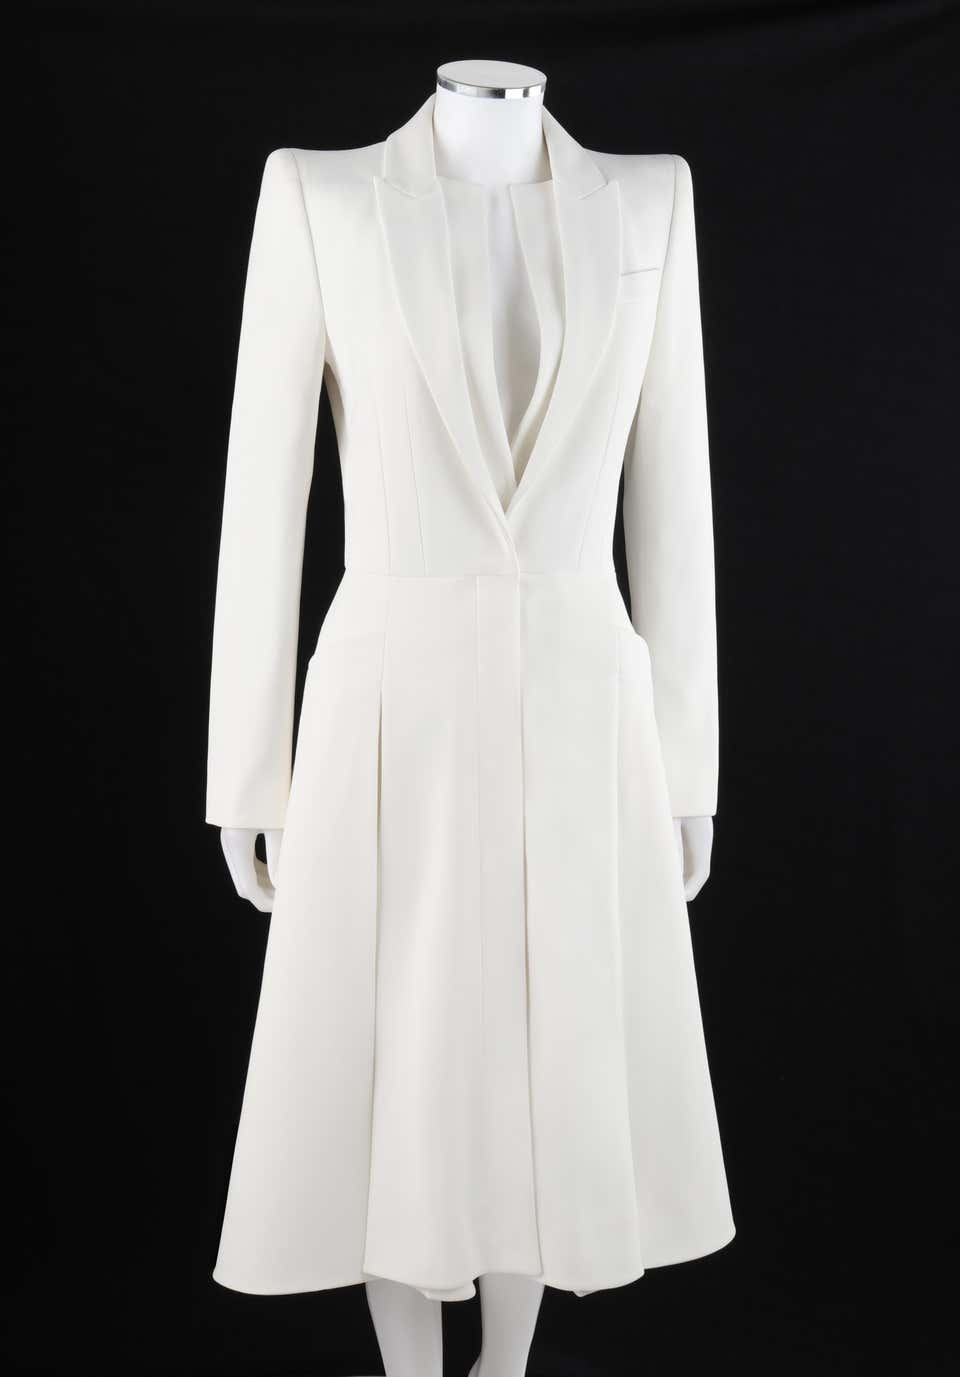 https://a.1stdibscdn.com/alexander-mcqueen-s-s-2015-white-tailored-classic-structure-longline-coat-dress-for-sale-picture-3/v_5413/1599583952051/014190_AlexanderMcQueenWhitePleatedandFlaredBlazerDressJacket_2__master.JPG?disable=upscale&auto=webp&quality=60&width=960